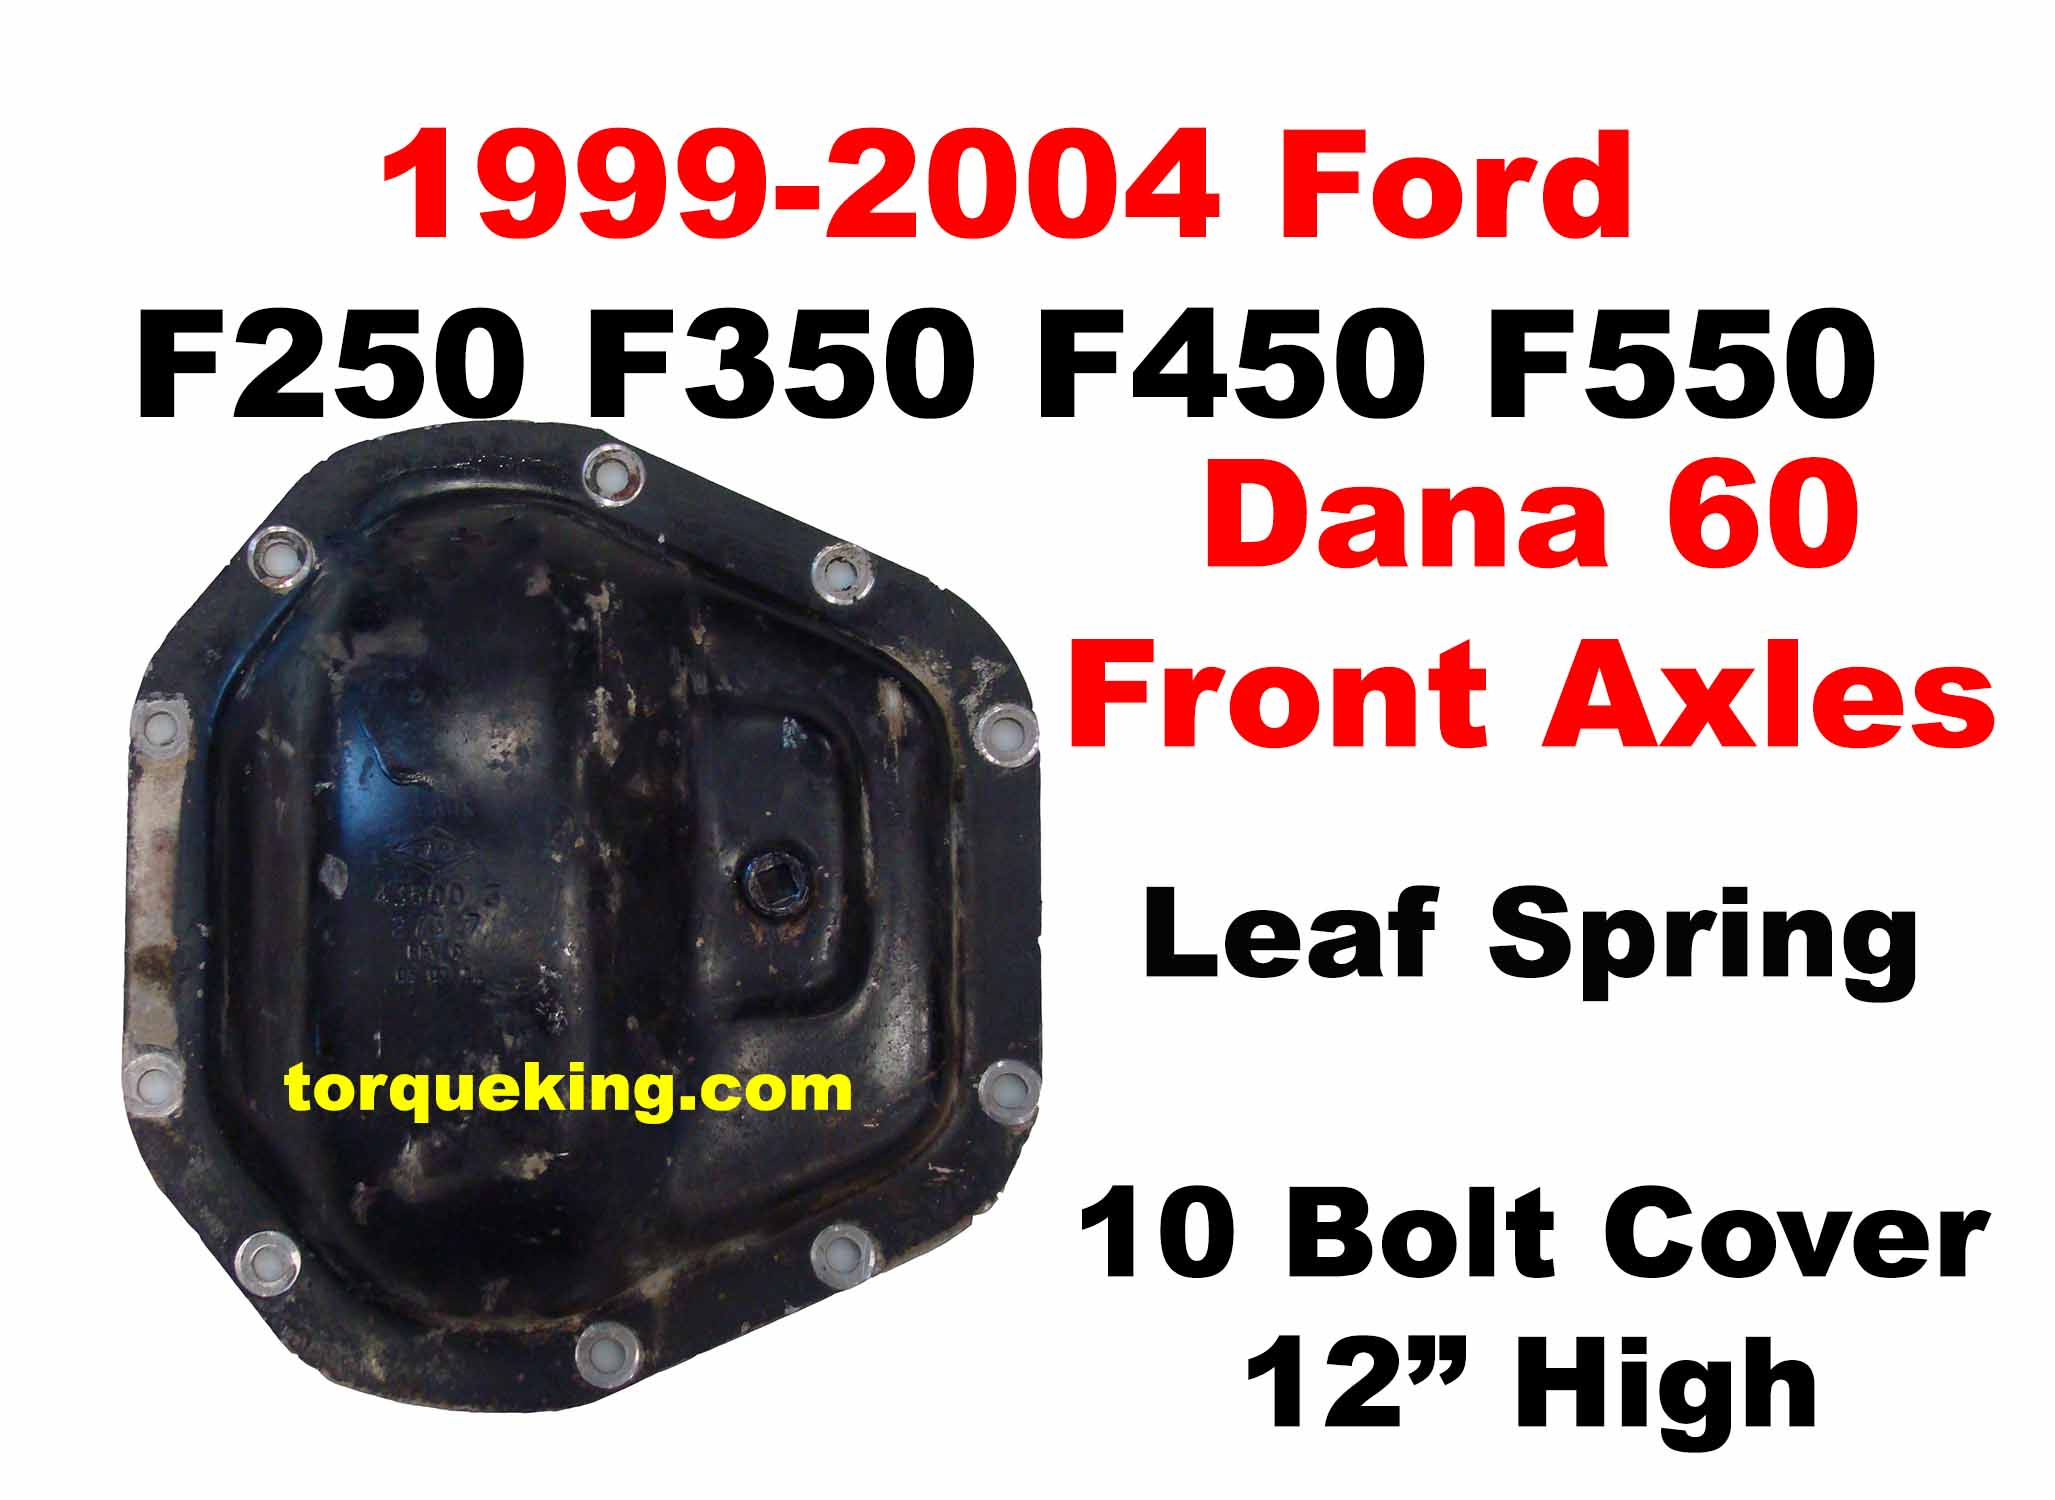 1999-2004 Ford Dana 60 Front Axle Identification